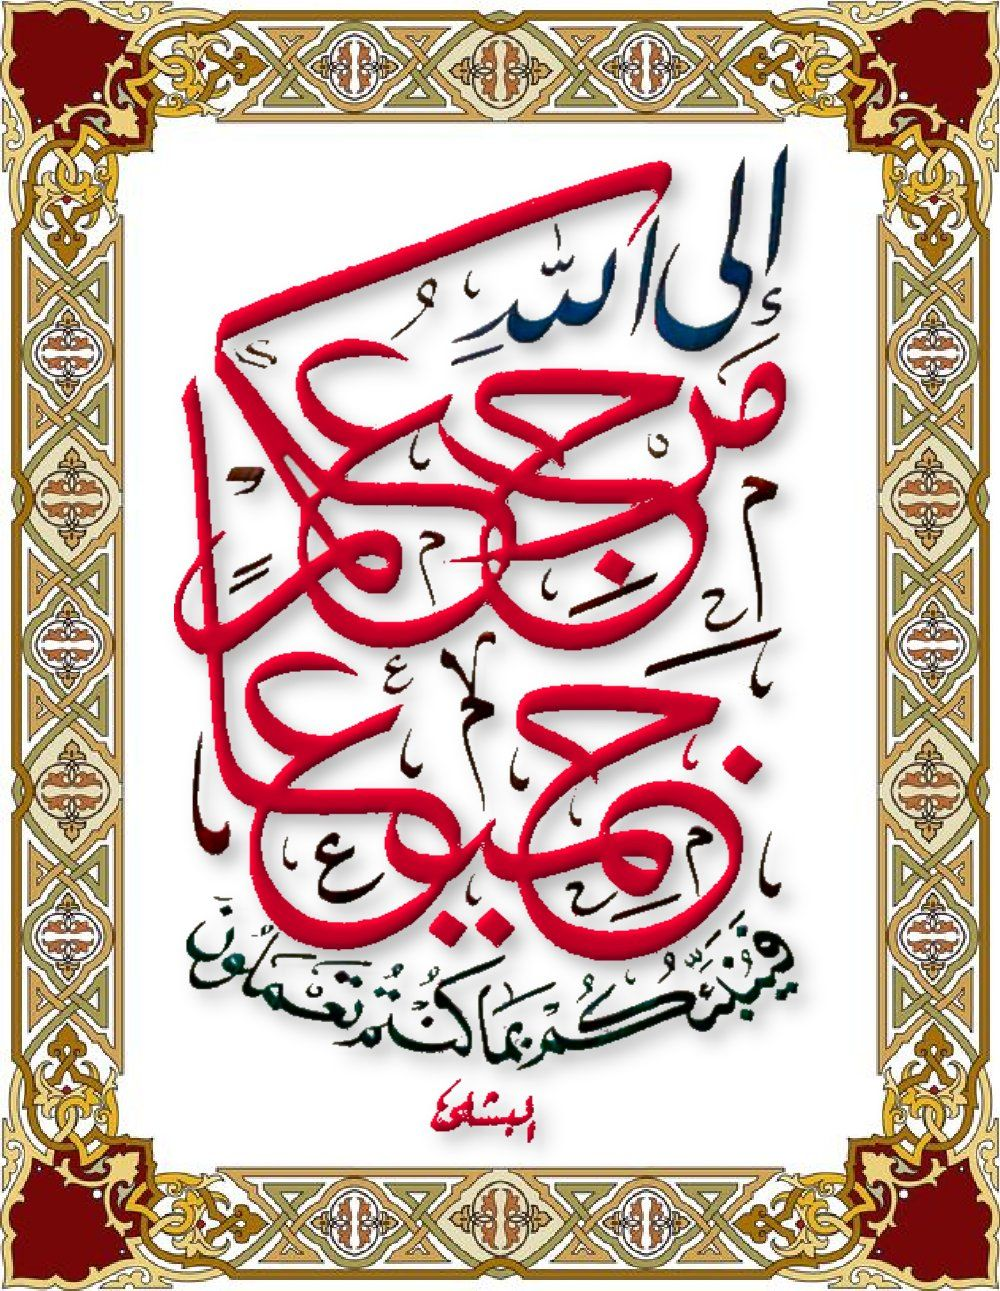 Pin by H. Meerza on holy word's & ethics Islamic art